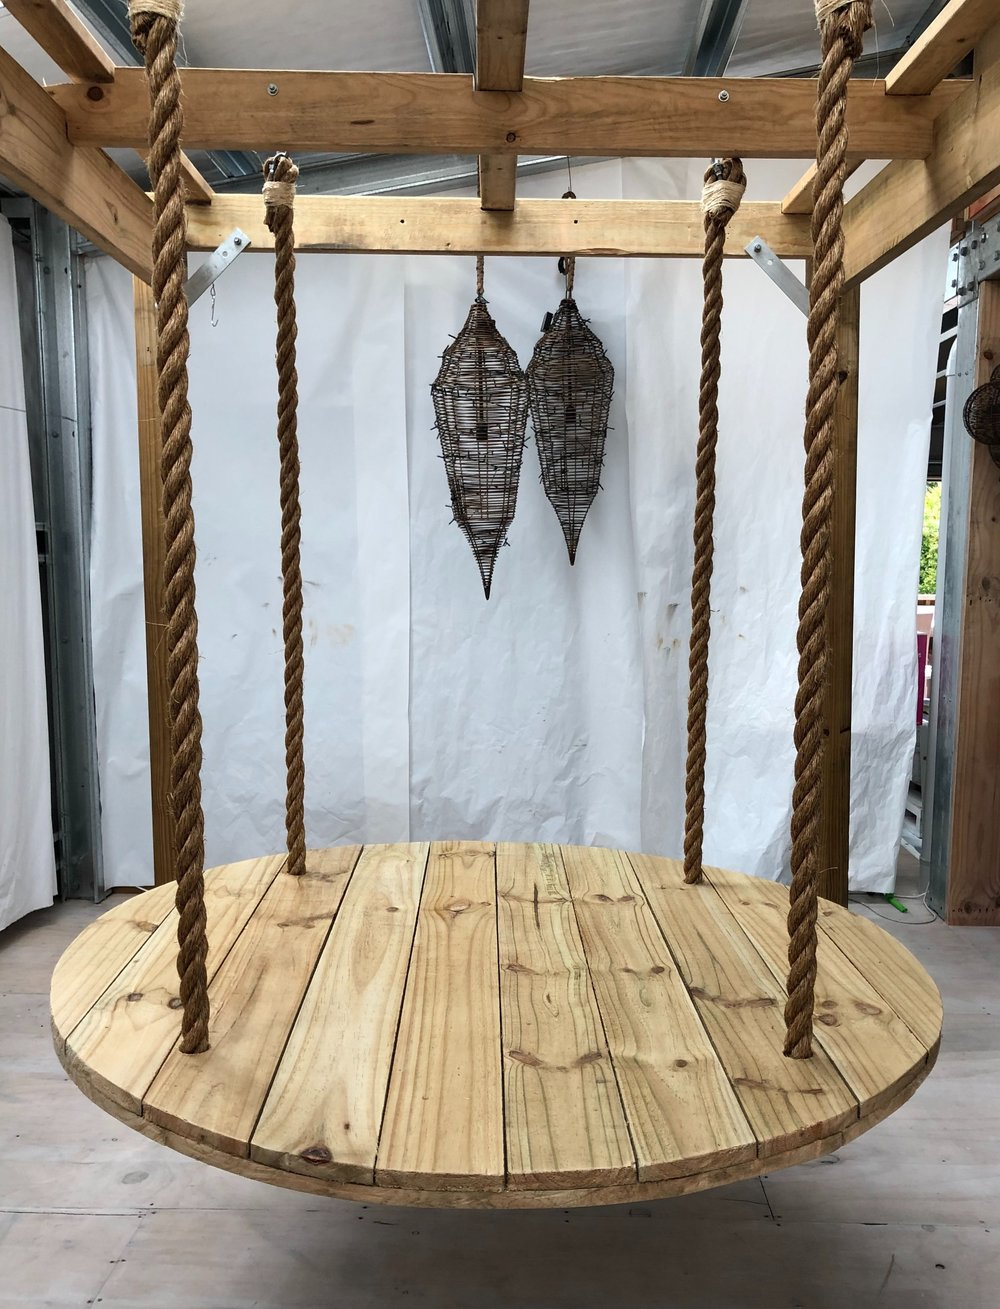 Suspended grazing table with pergola    $300 hire $75 installation - Delivery extra